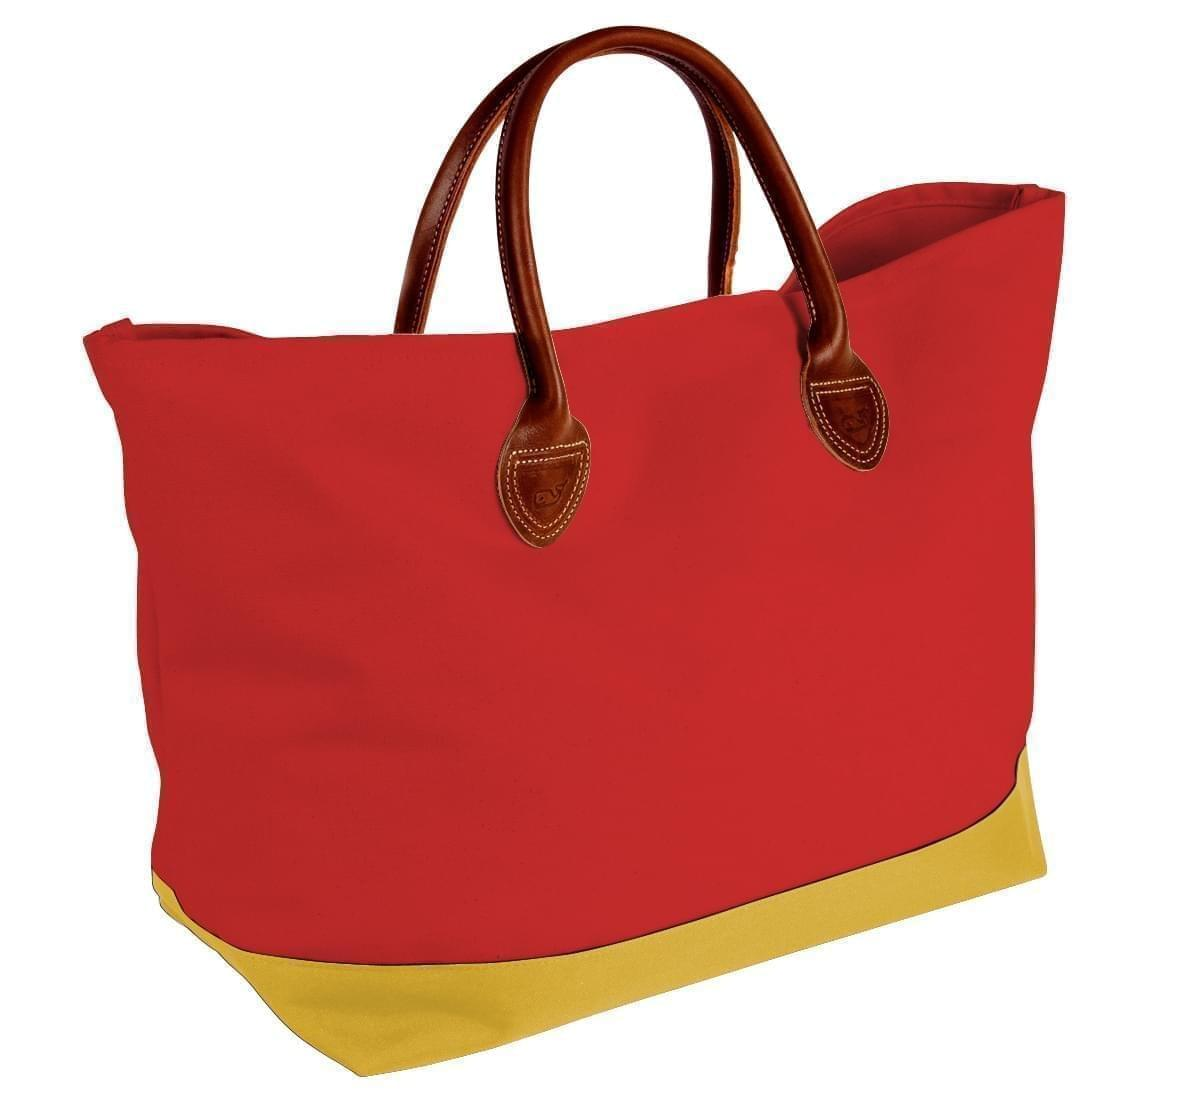 USA Made Canvas Leather Handle Totes, Red-Gold, 10899-QE9